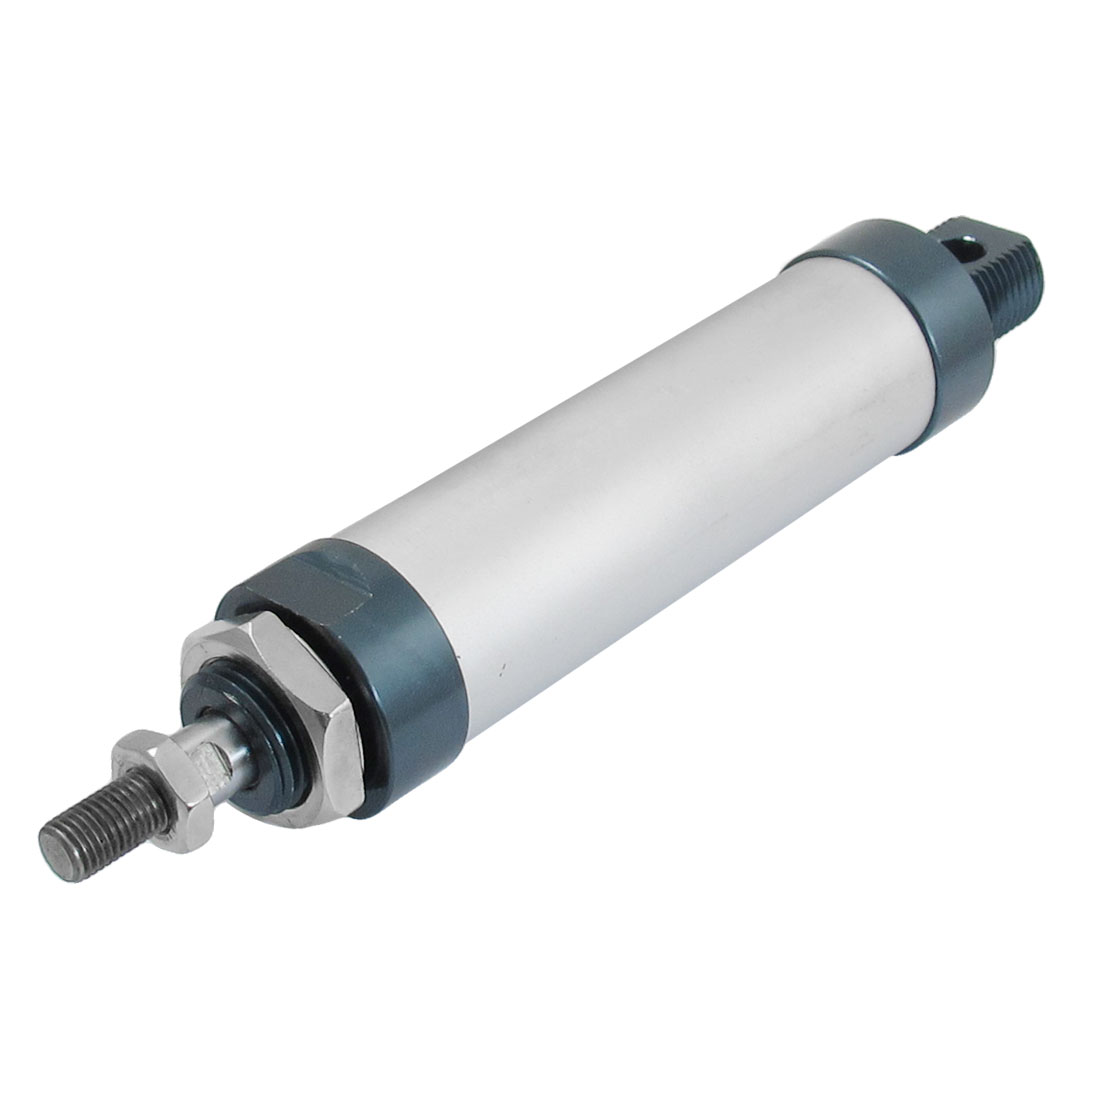 Dual Action Single Male Thread Rod 1MPa 32 x 75 Pneumatic Gas Air Cylinder